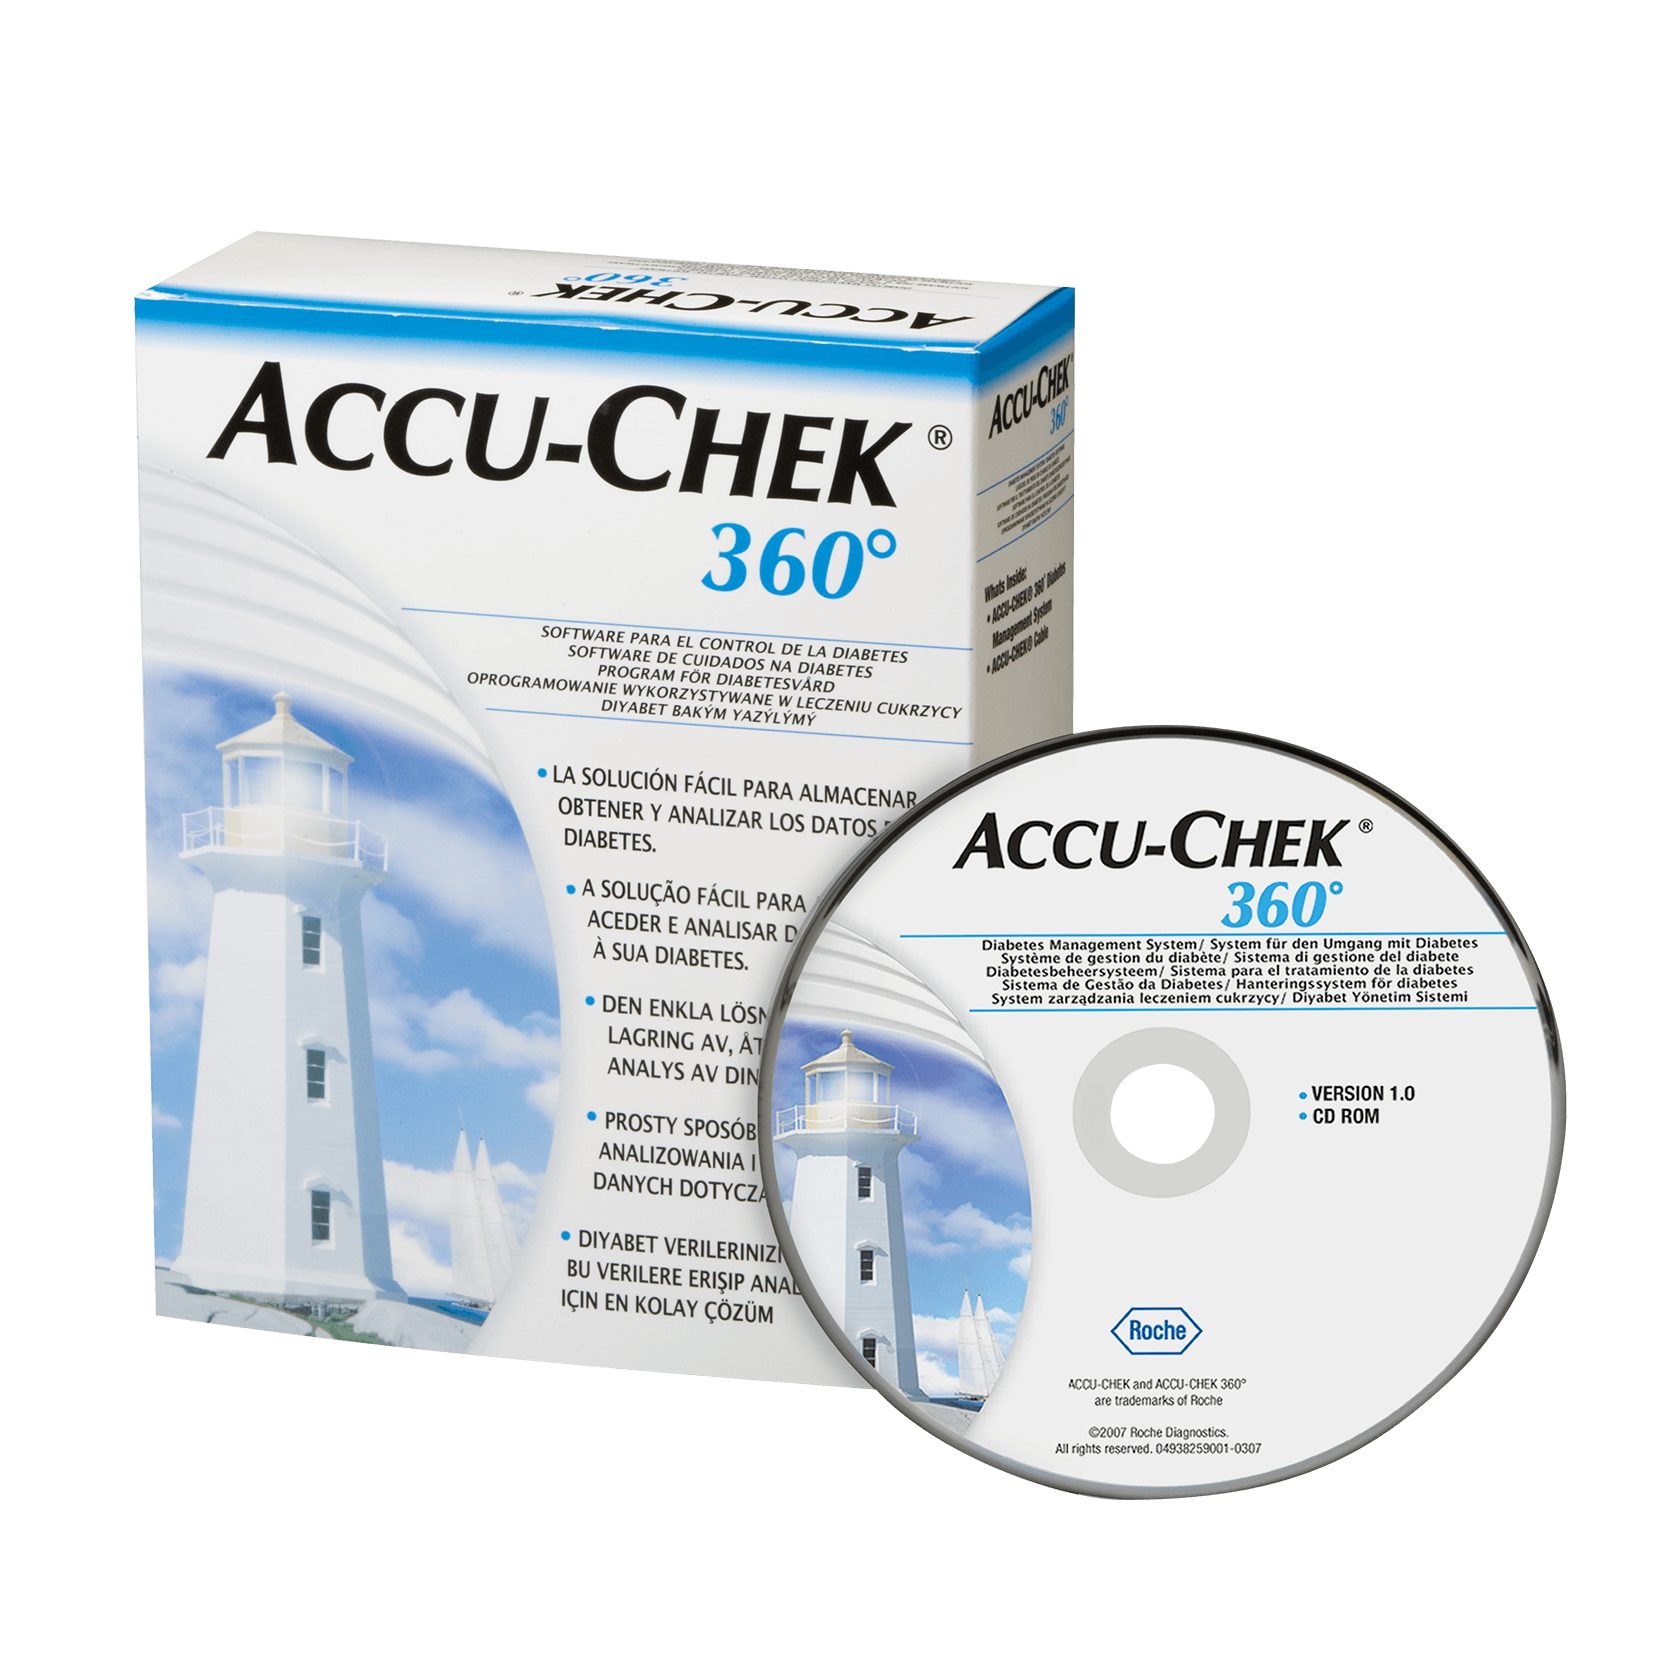 Comments on ACCU-CHEK 360°